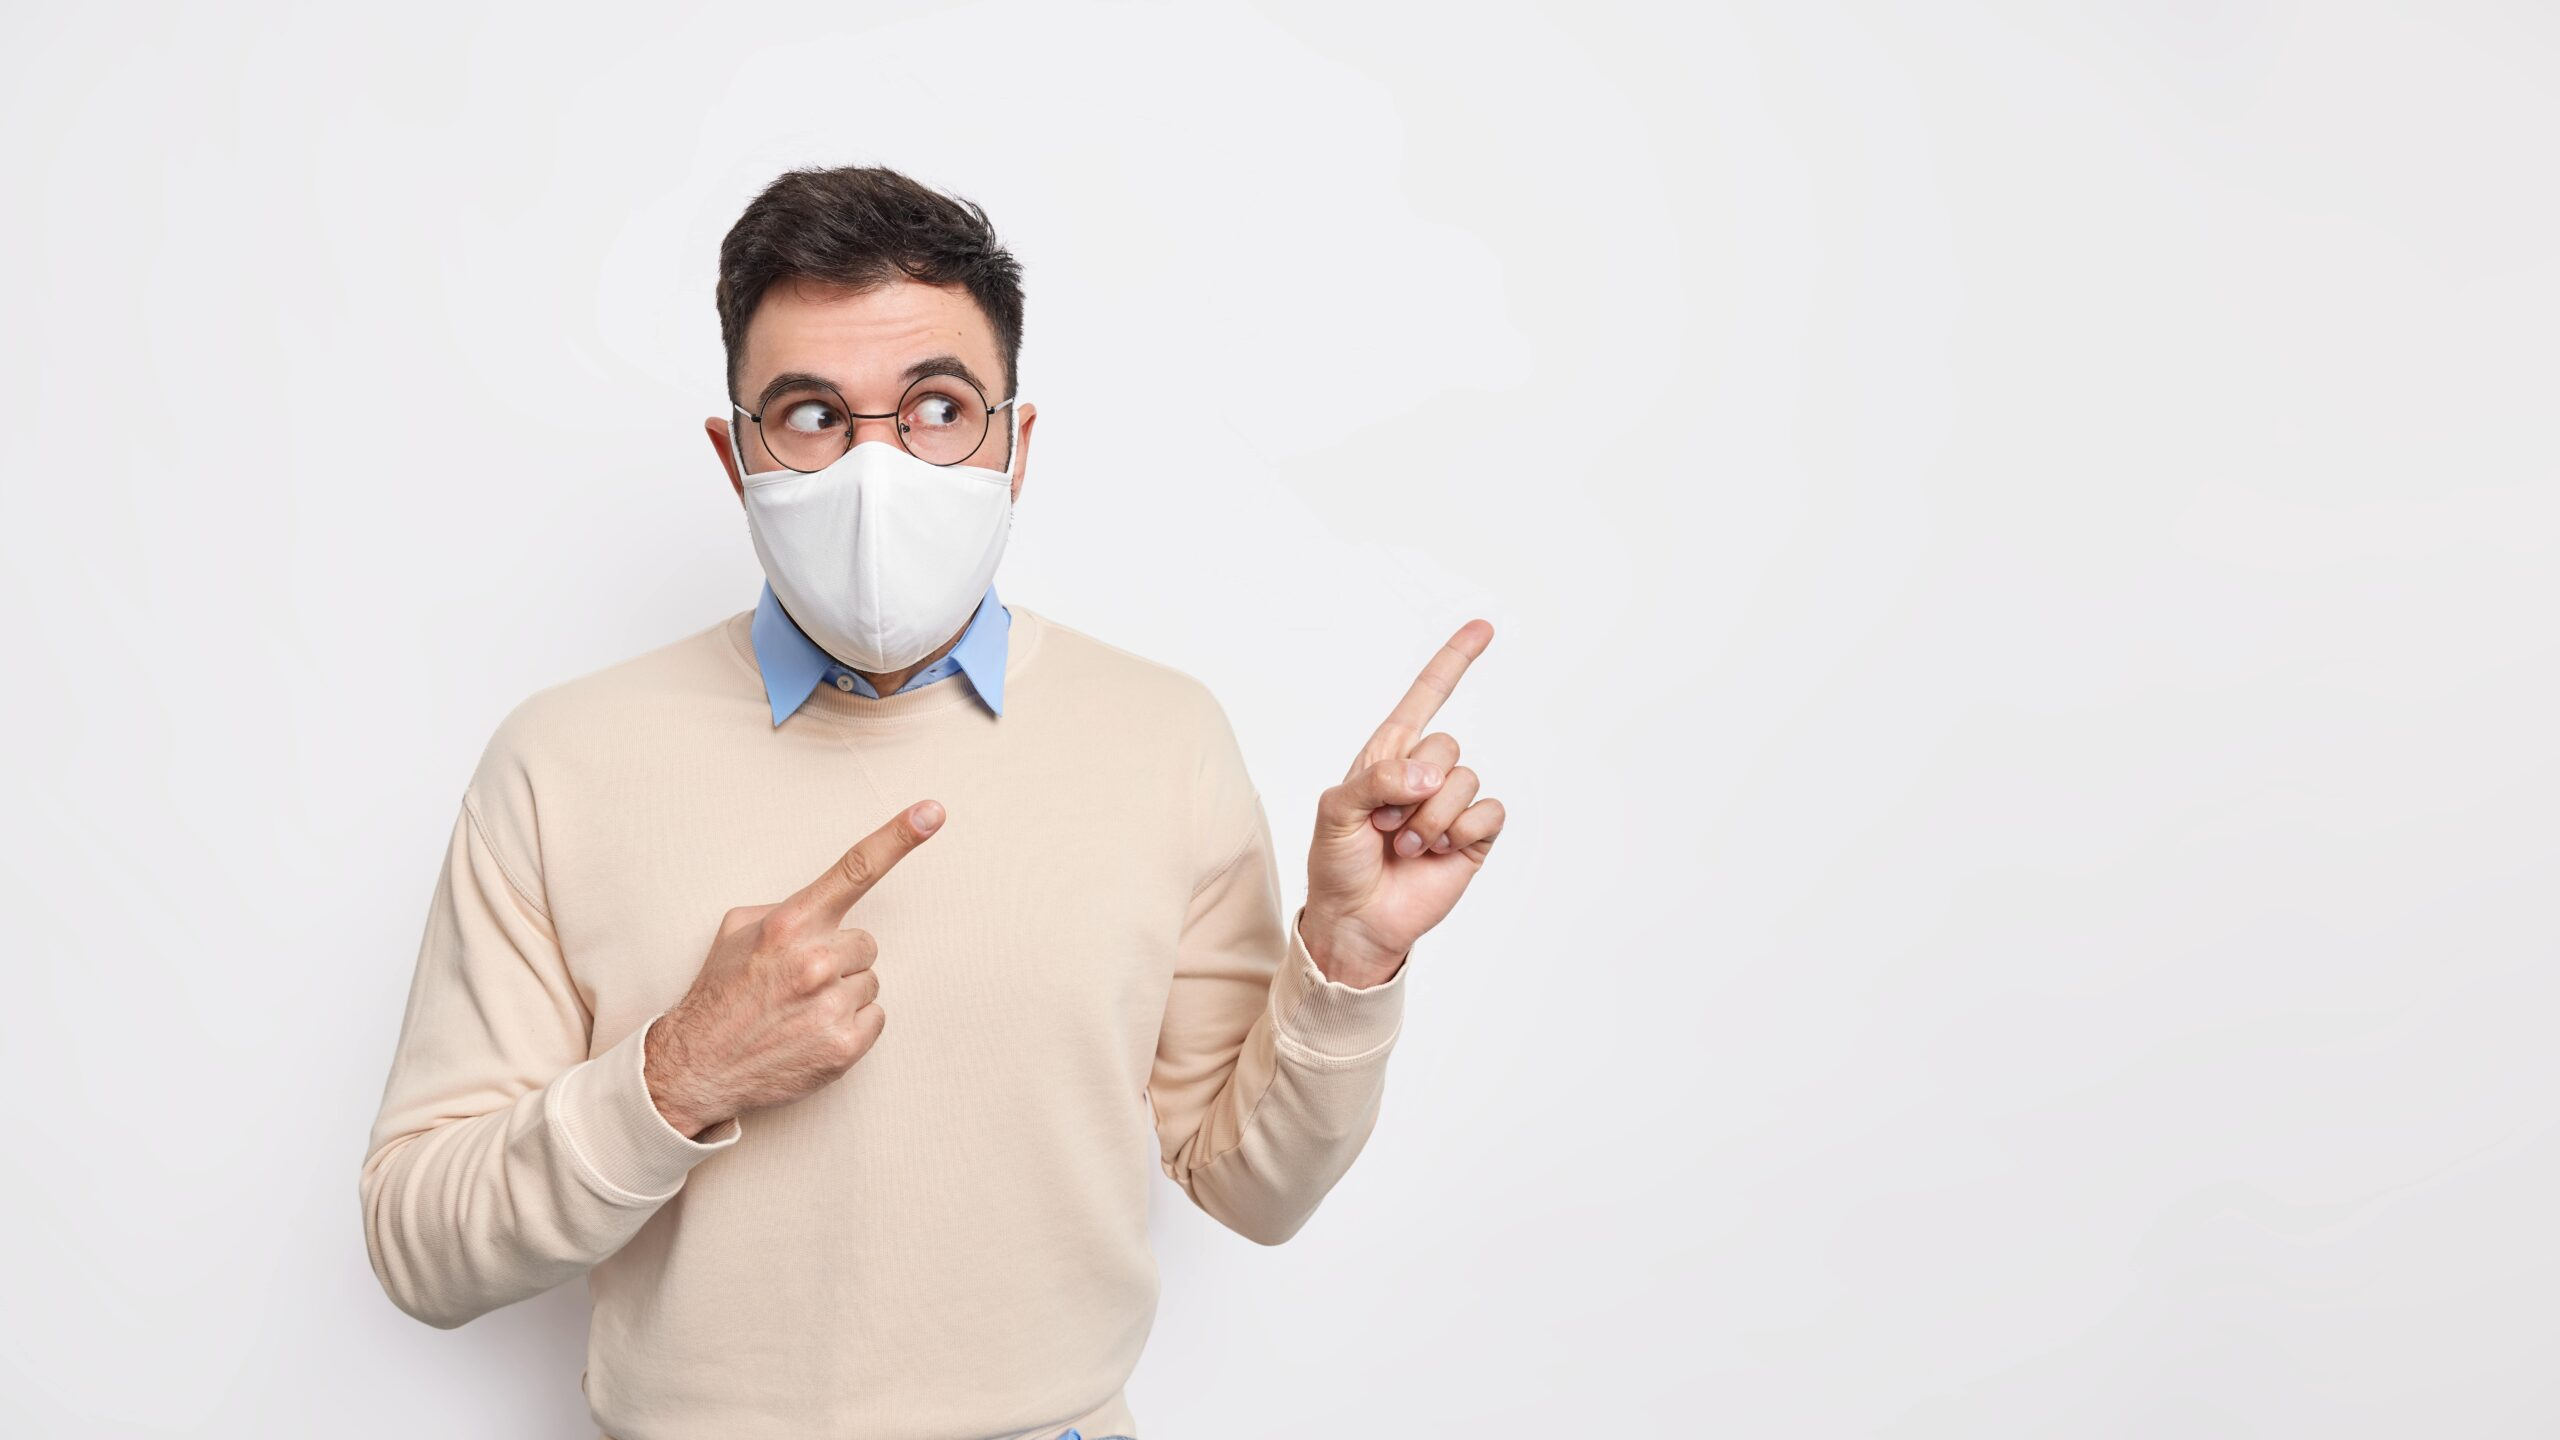 indoor-studio-shot-shocked-adult-man-wears-protective-face-mask-prevent-coronavirus-has-surprised-face-expression